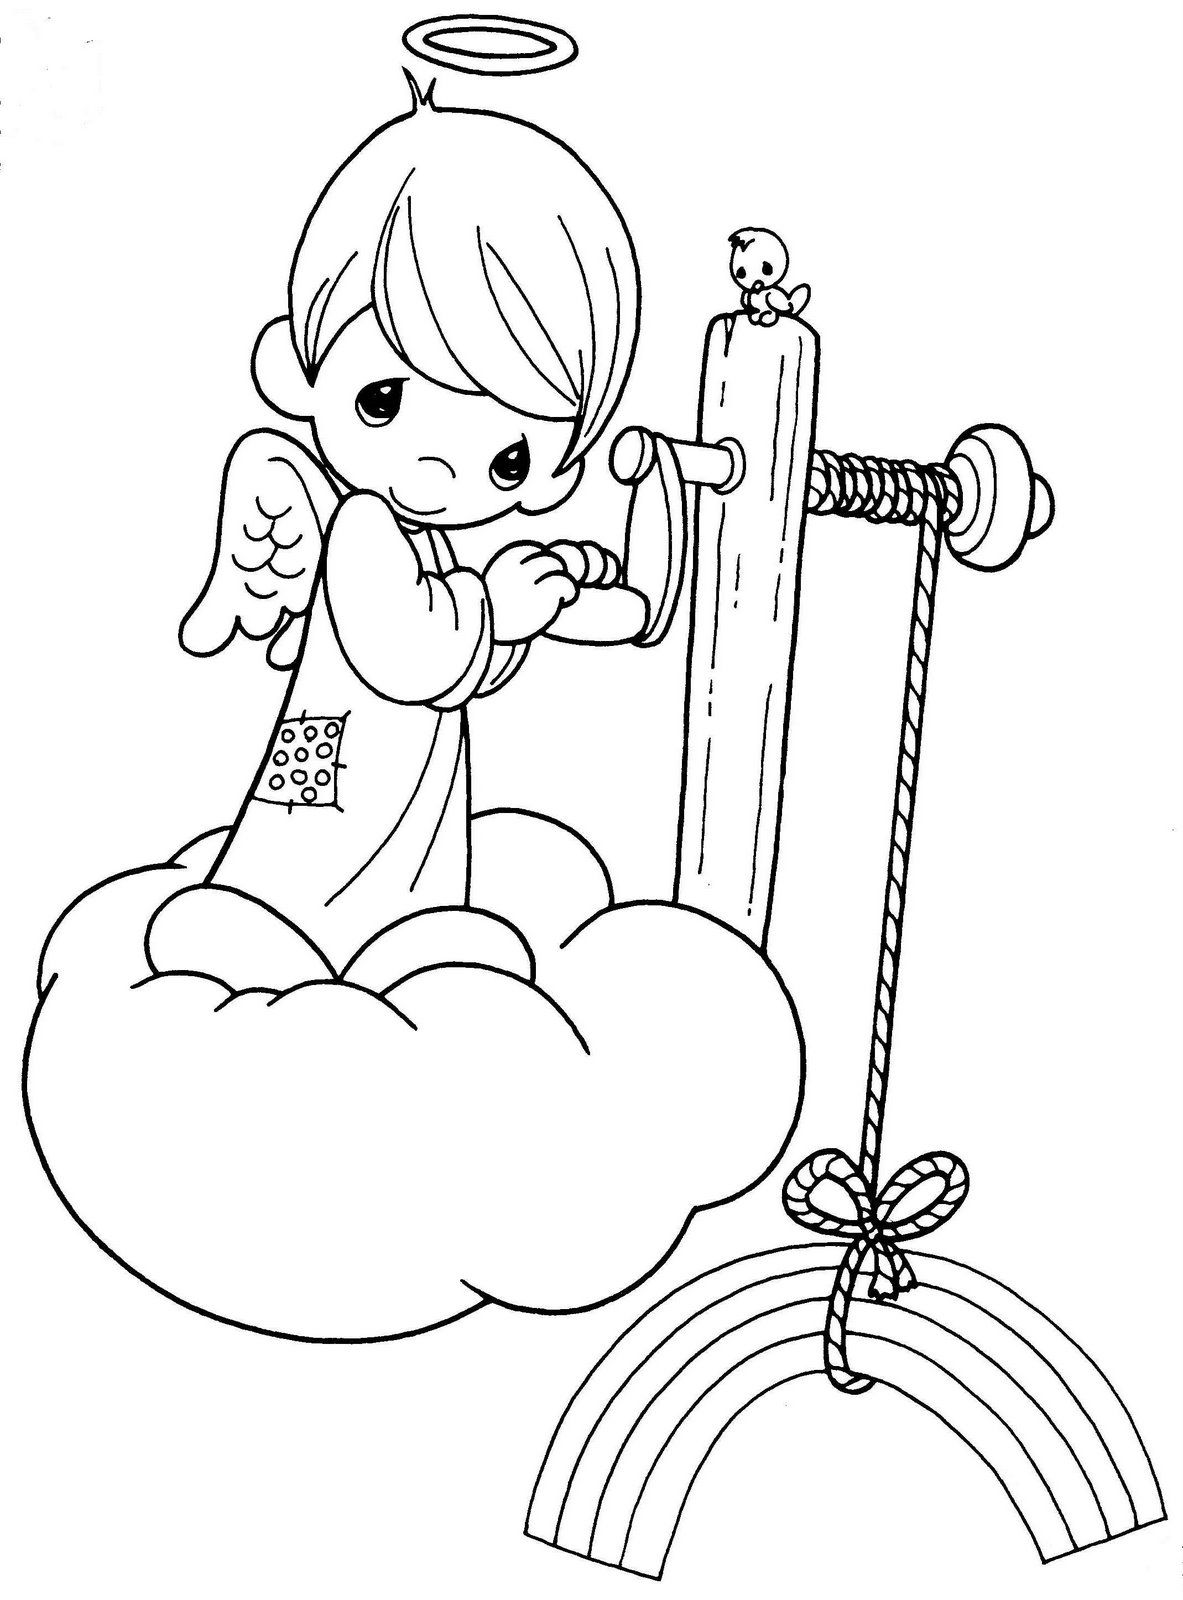 Precious Moments Angels Coloring Pages | para colorear de preciosos ...